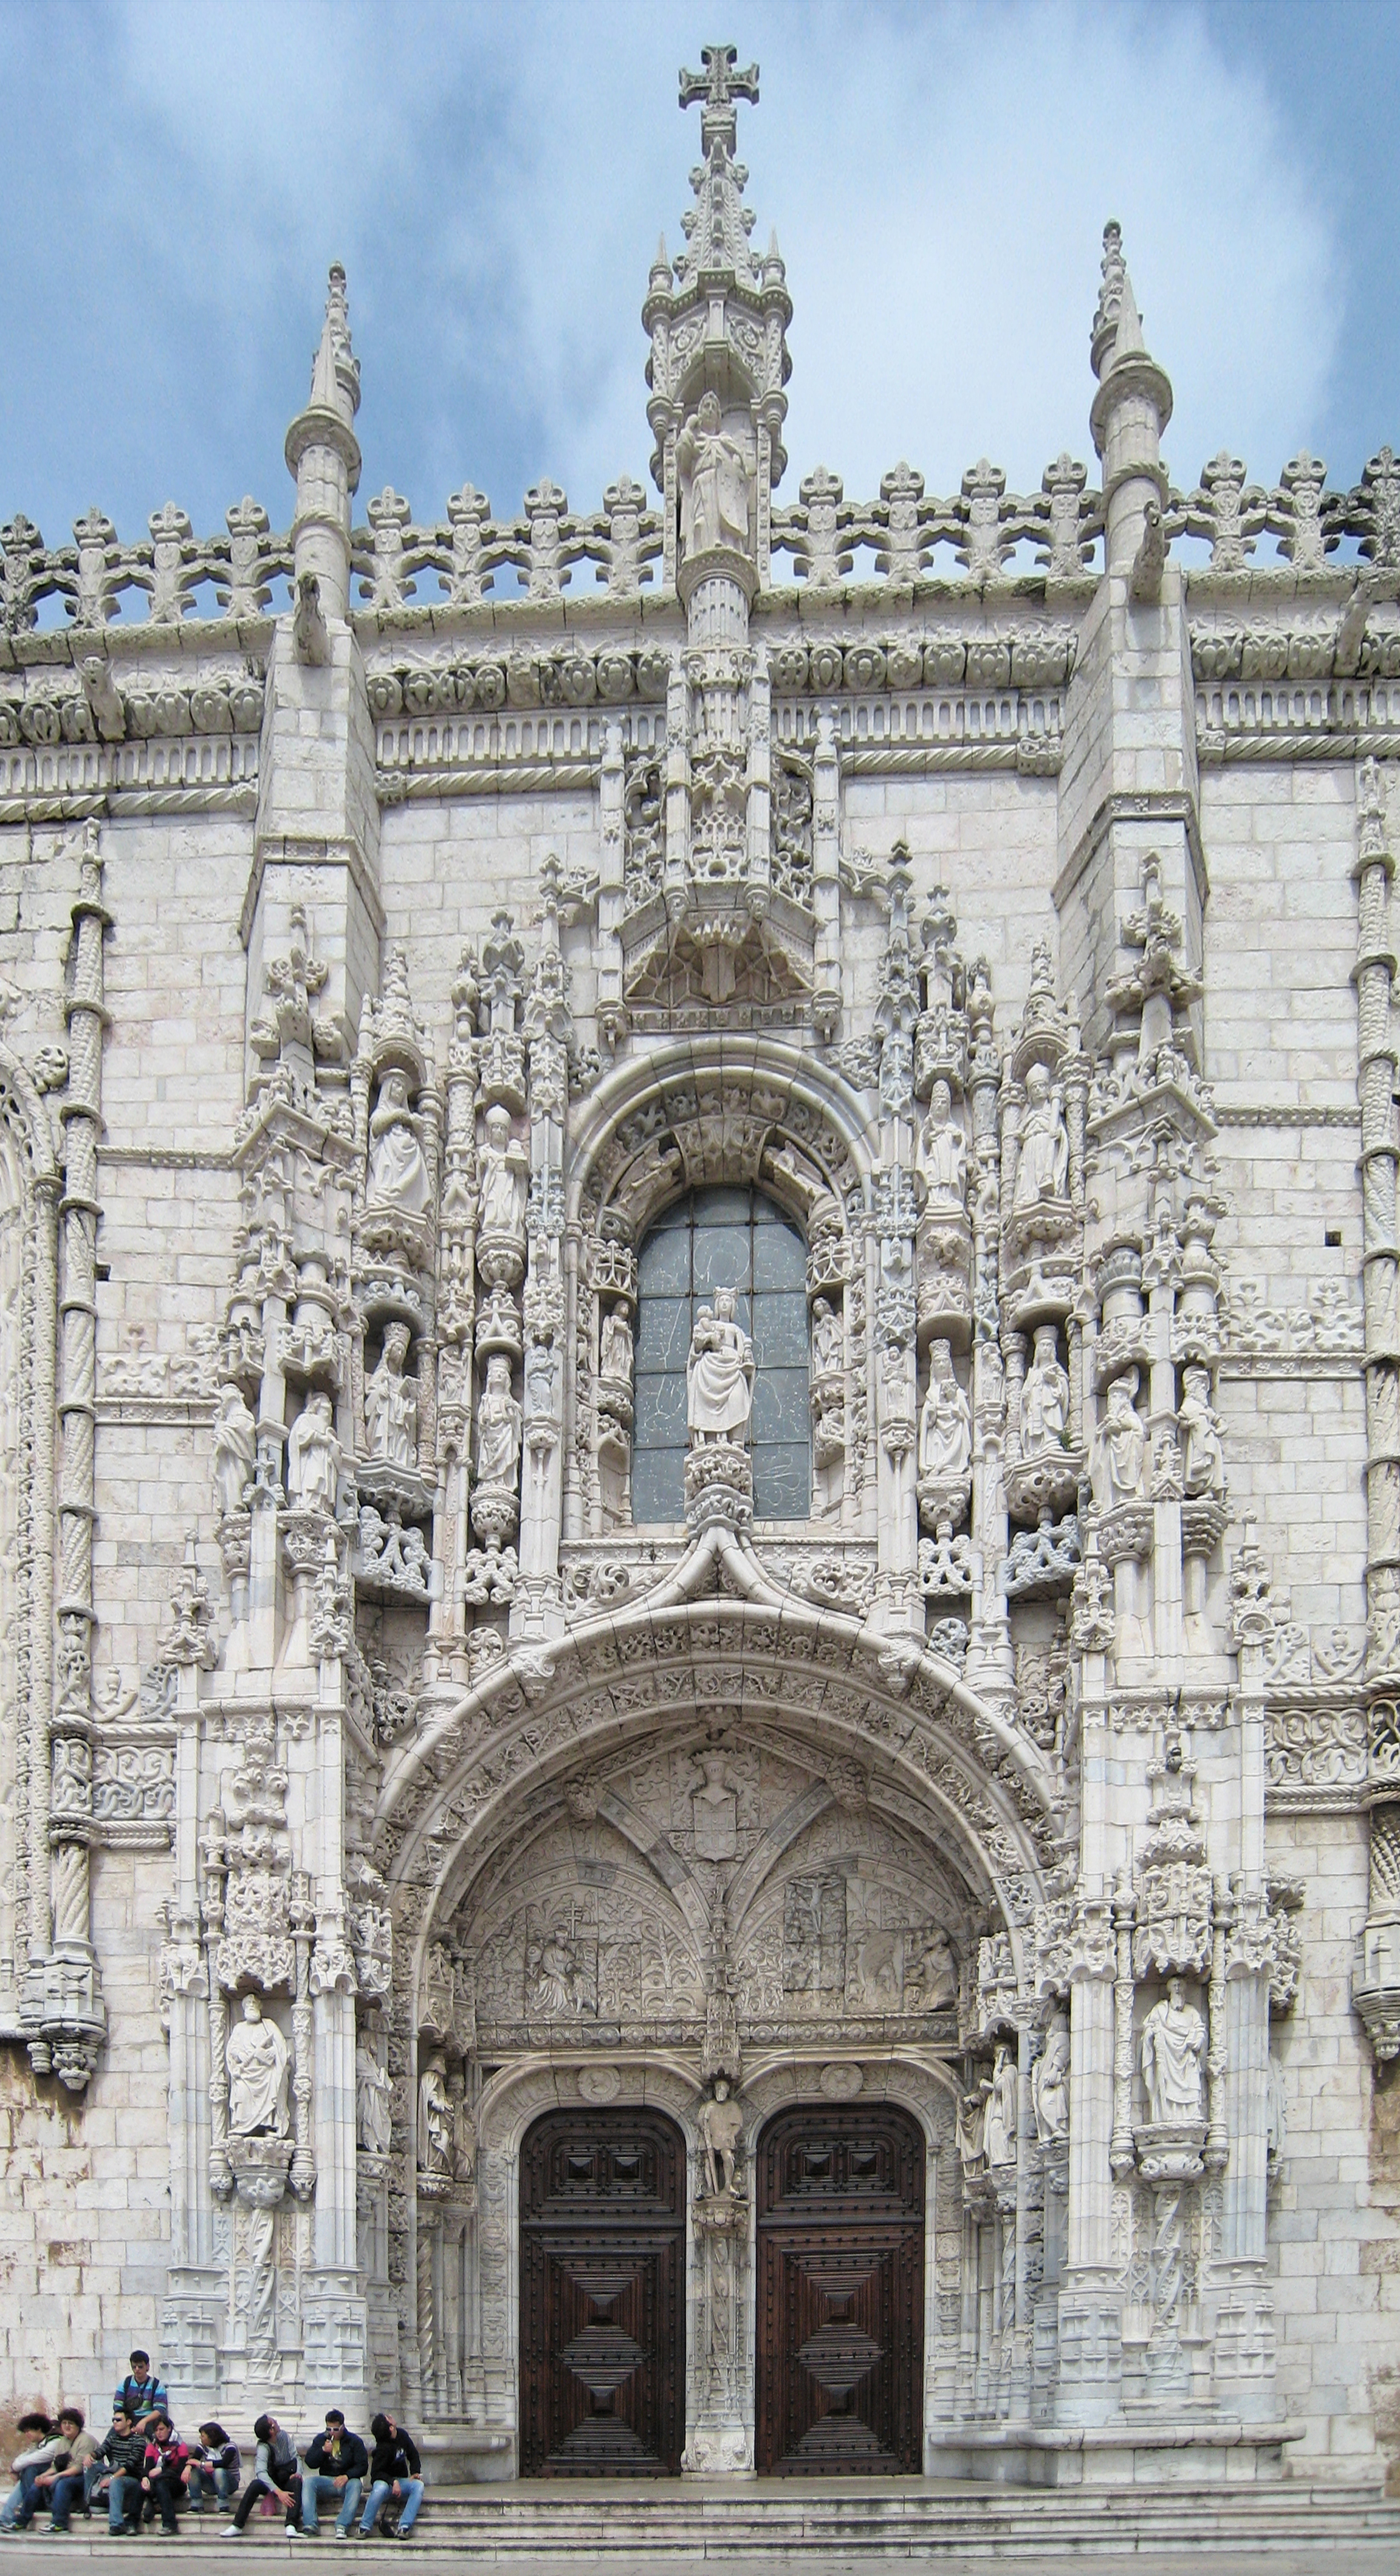 Monastery of the Order of St. Jerome, Lisbon Portugal 2.jpg